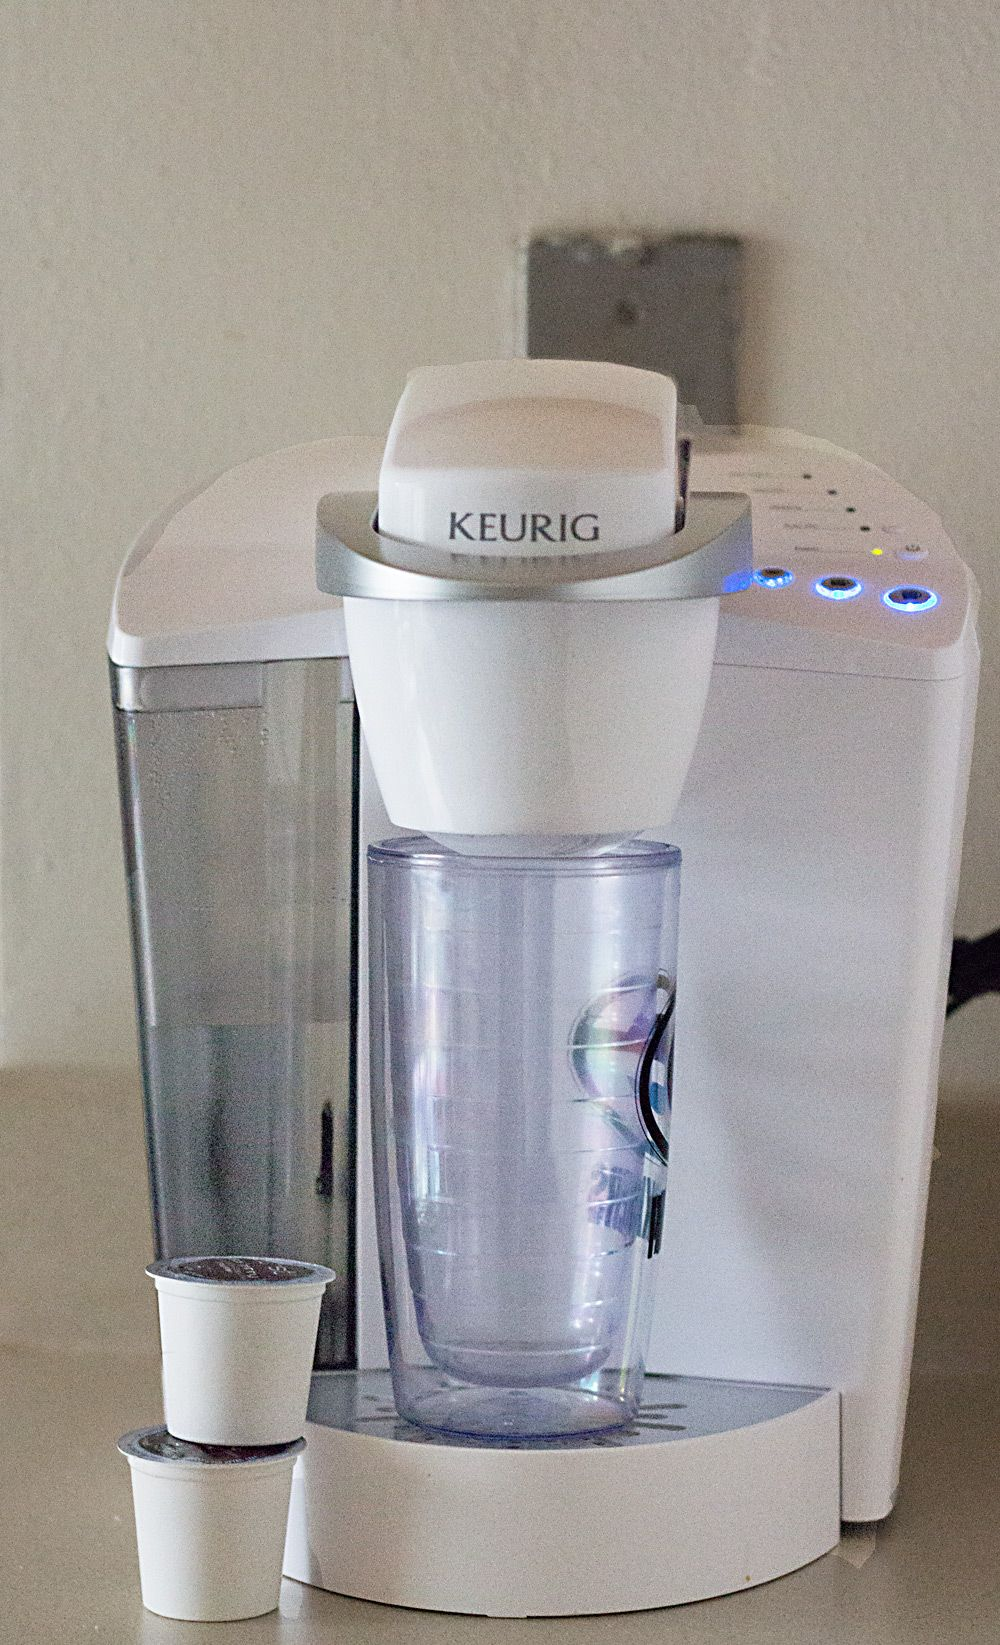 How to make iced coffee at home with keurig iced coffee